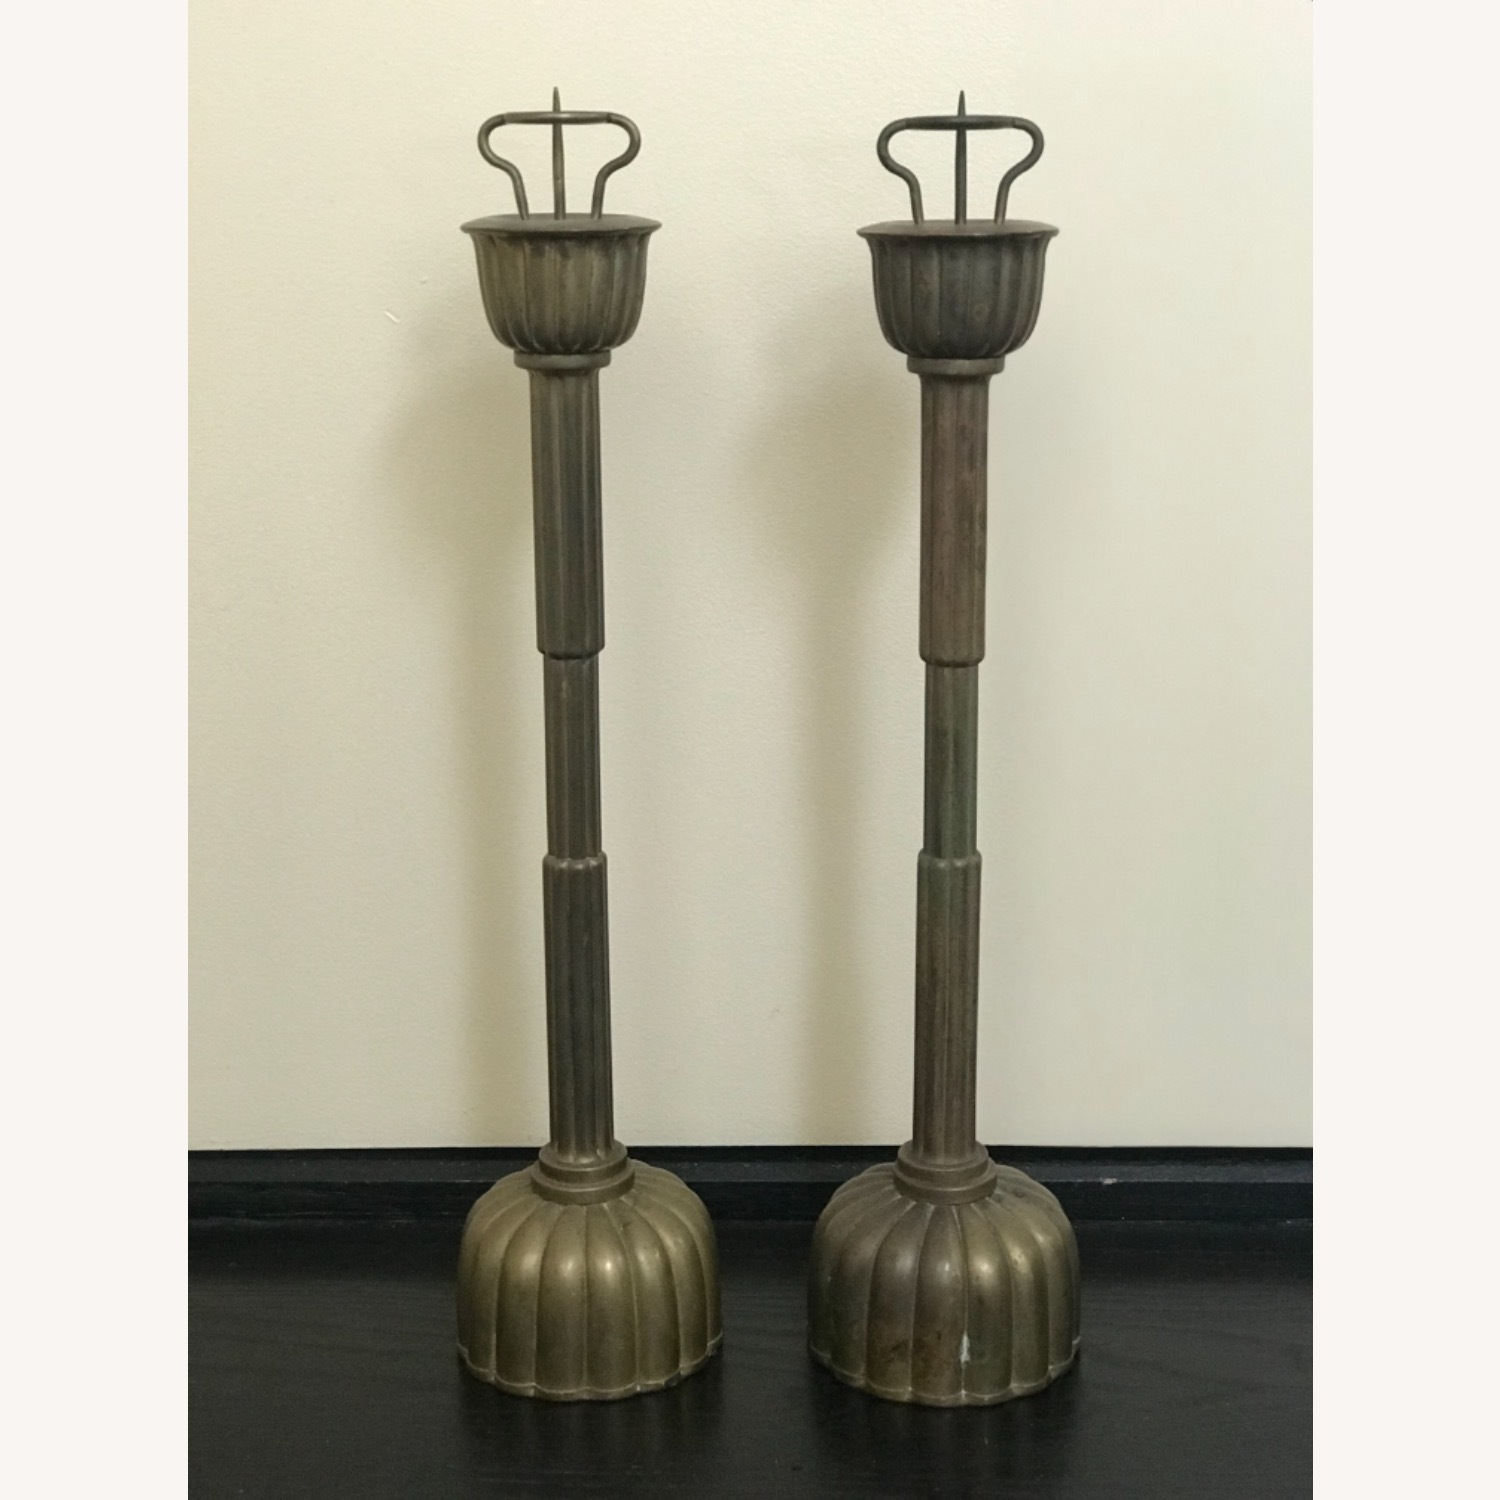 Antique Japanese Candlestick Holders - image-3